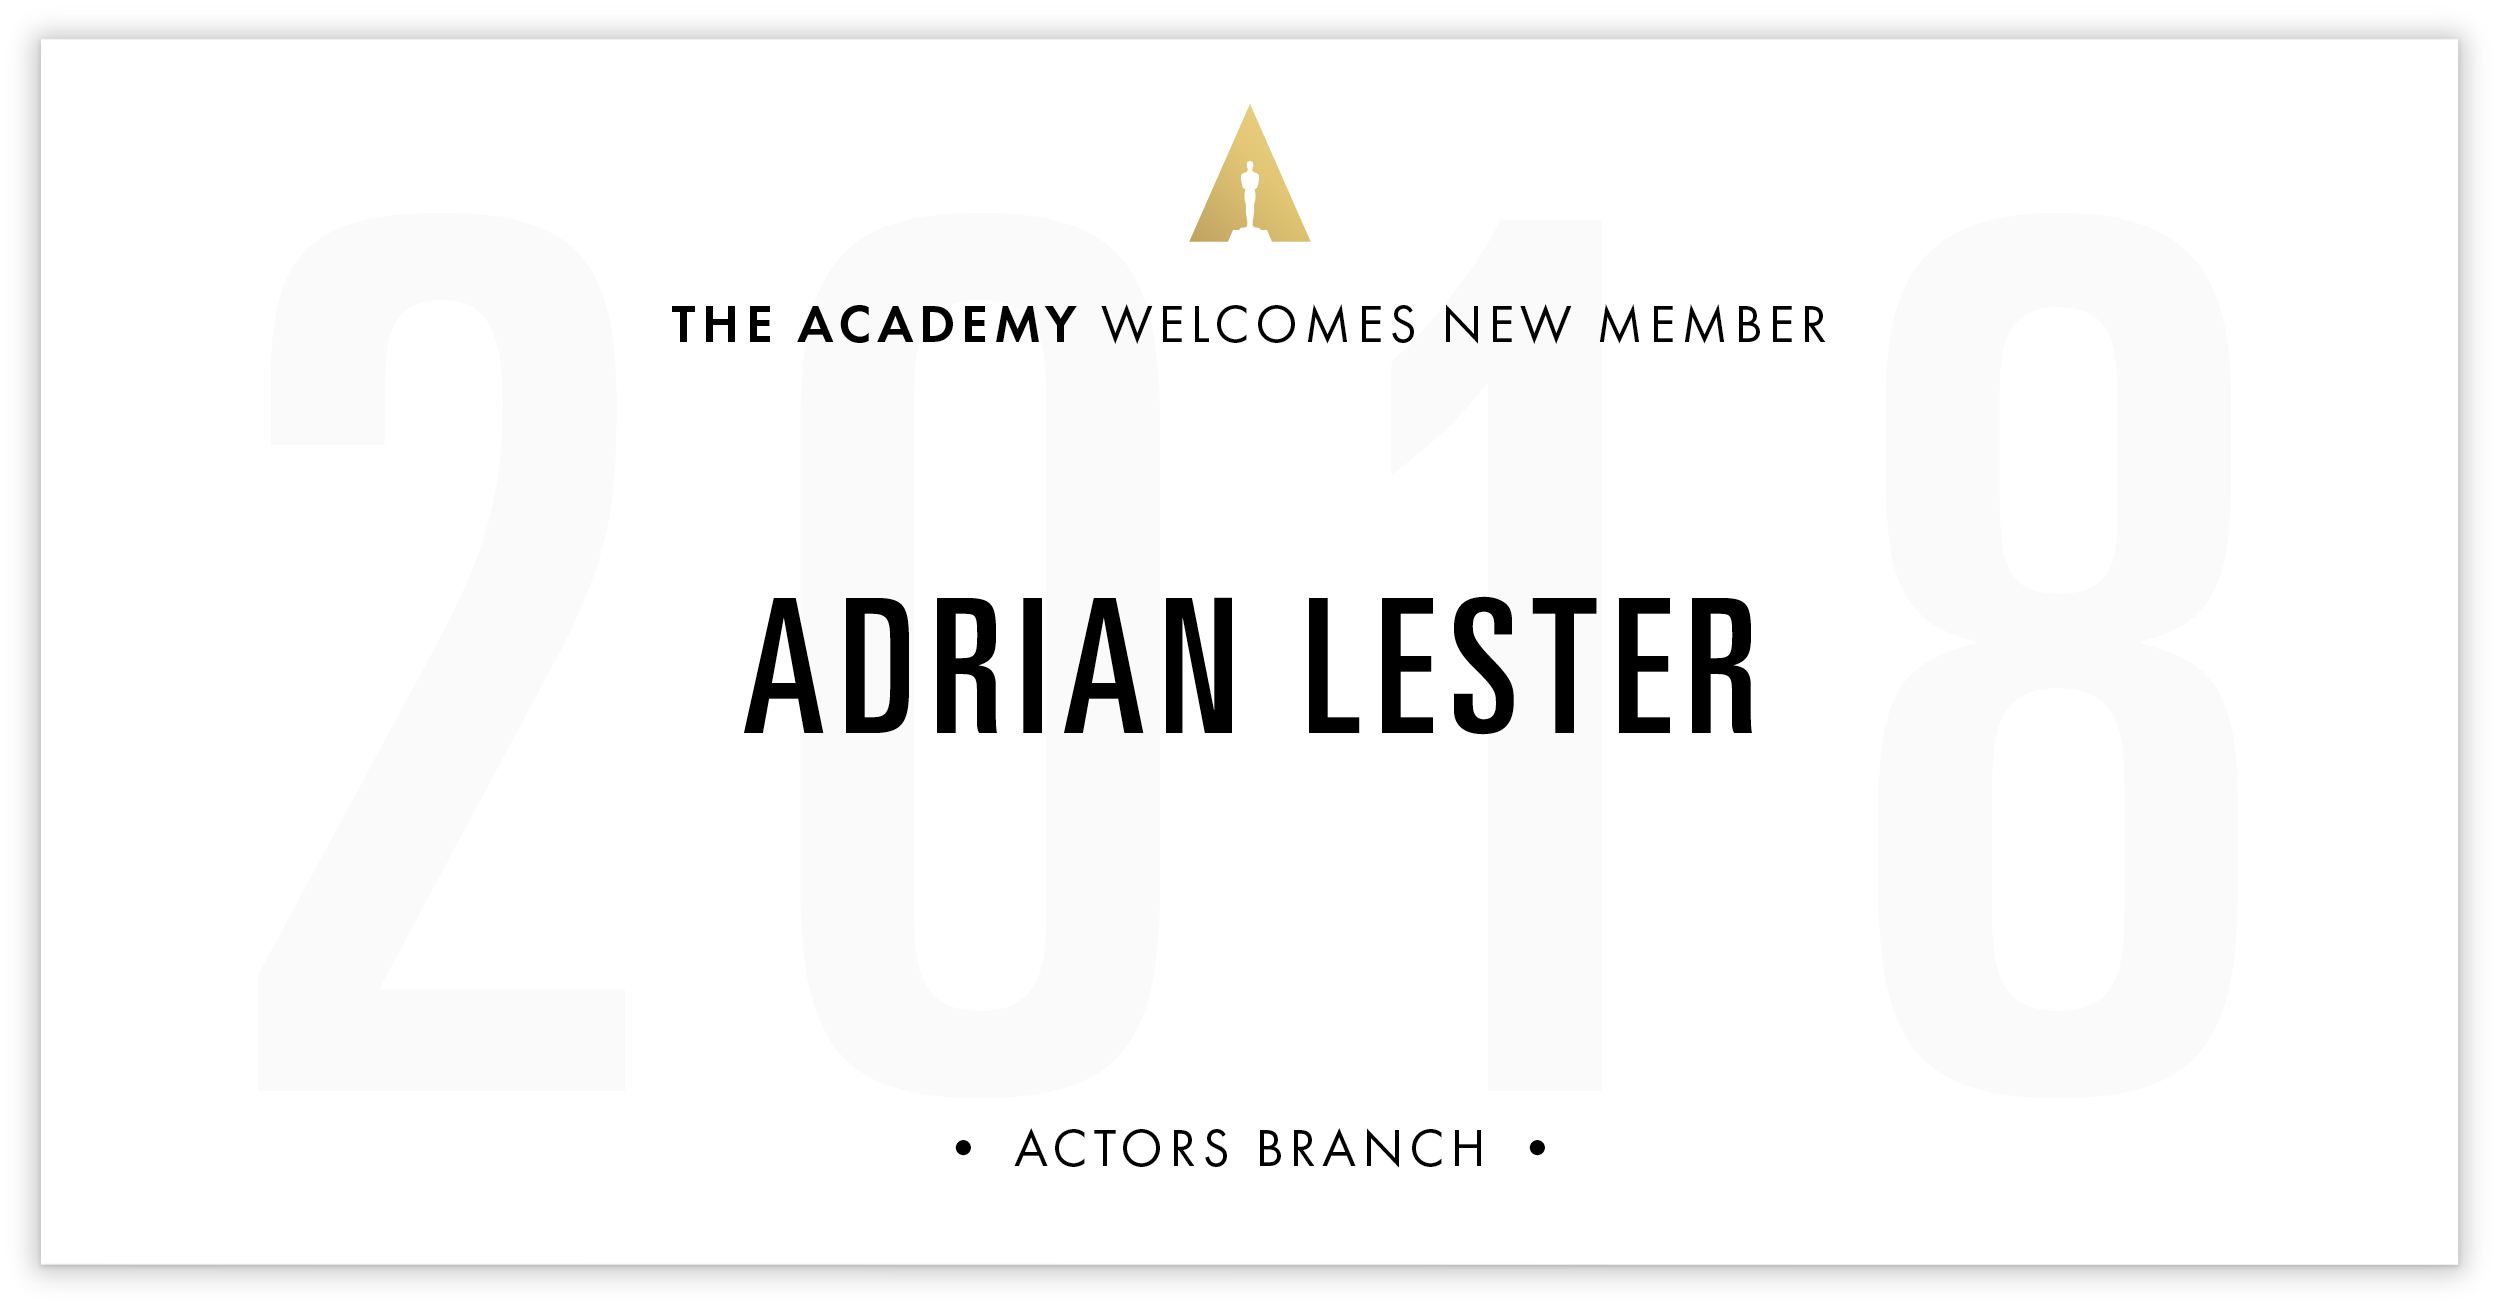 Adrian Lester is invited!